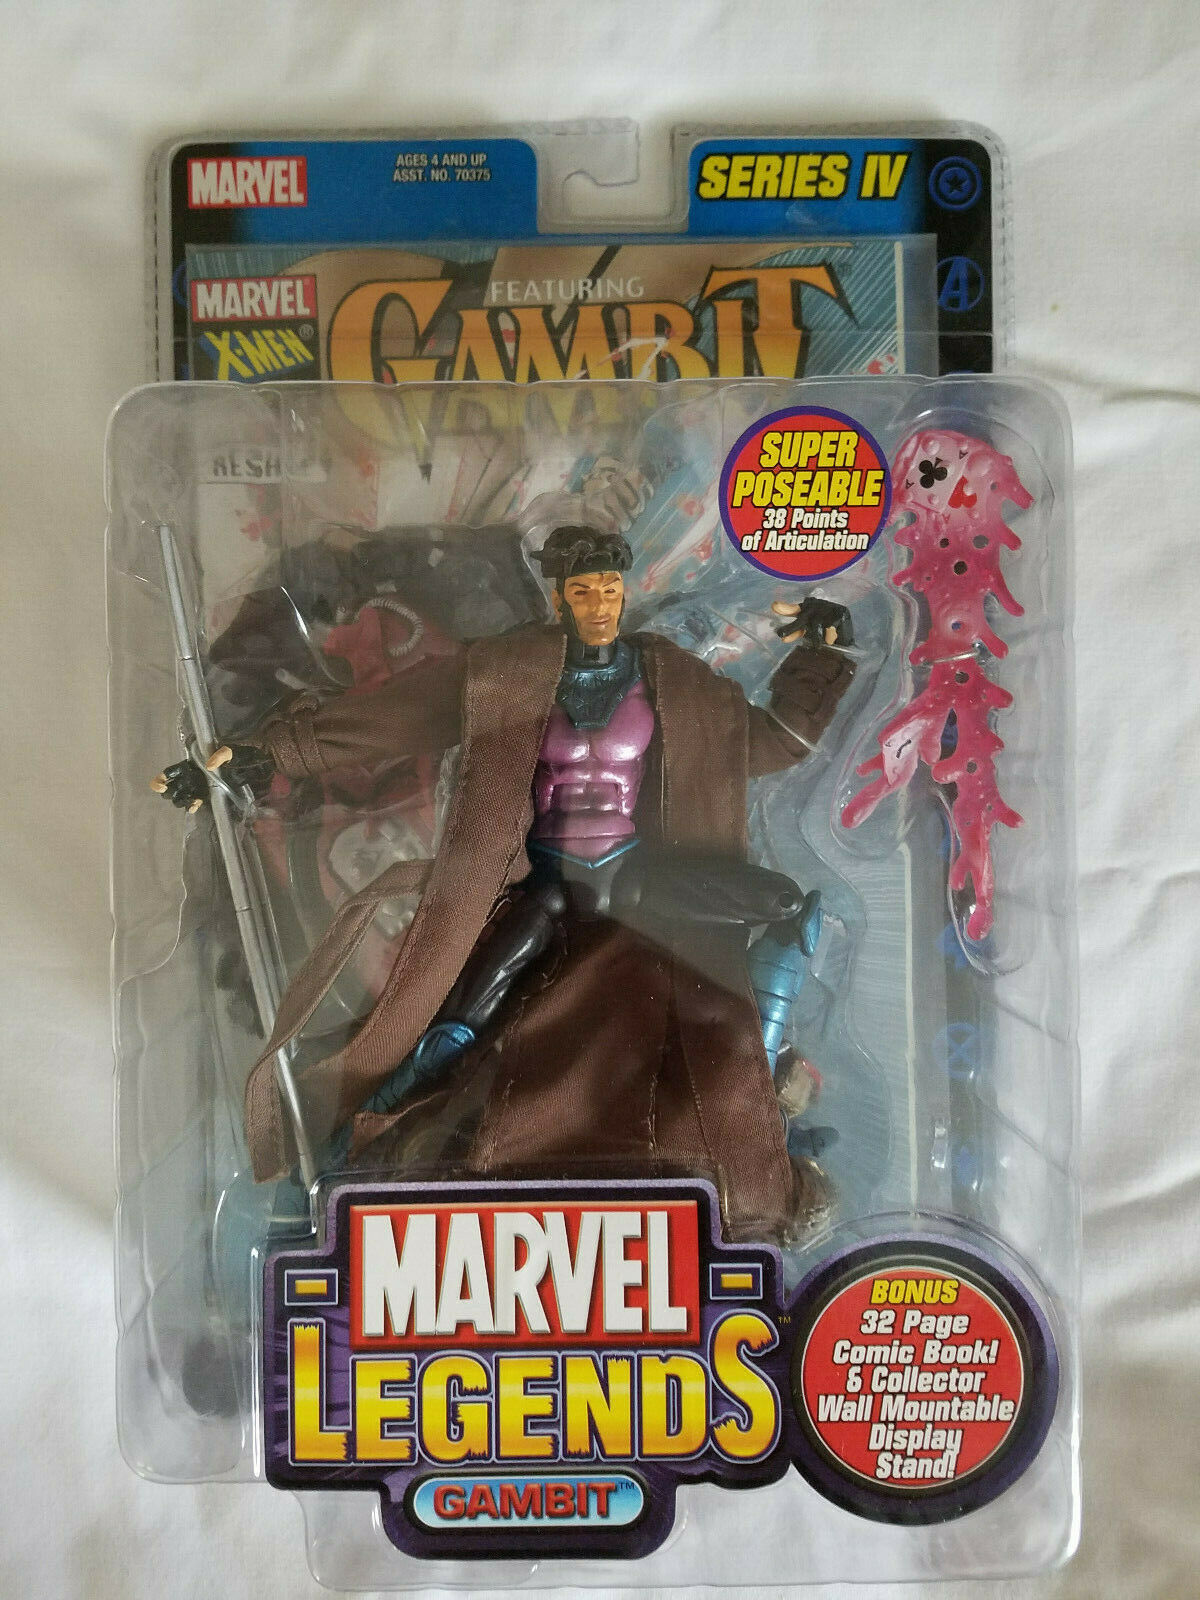 Marvel Legends Series IV Gambit